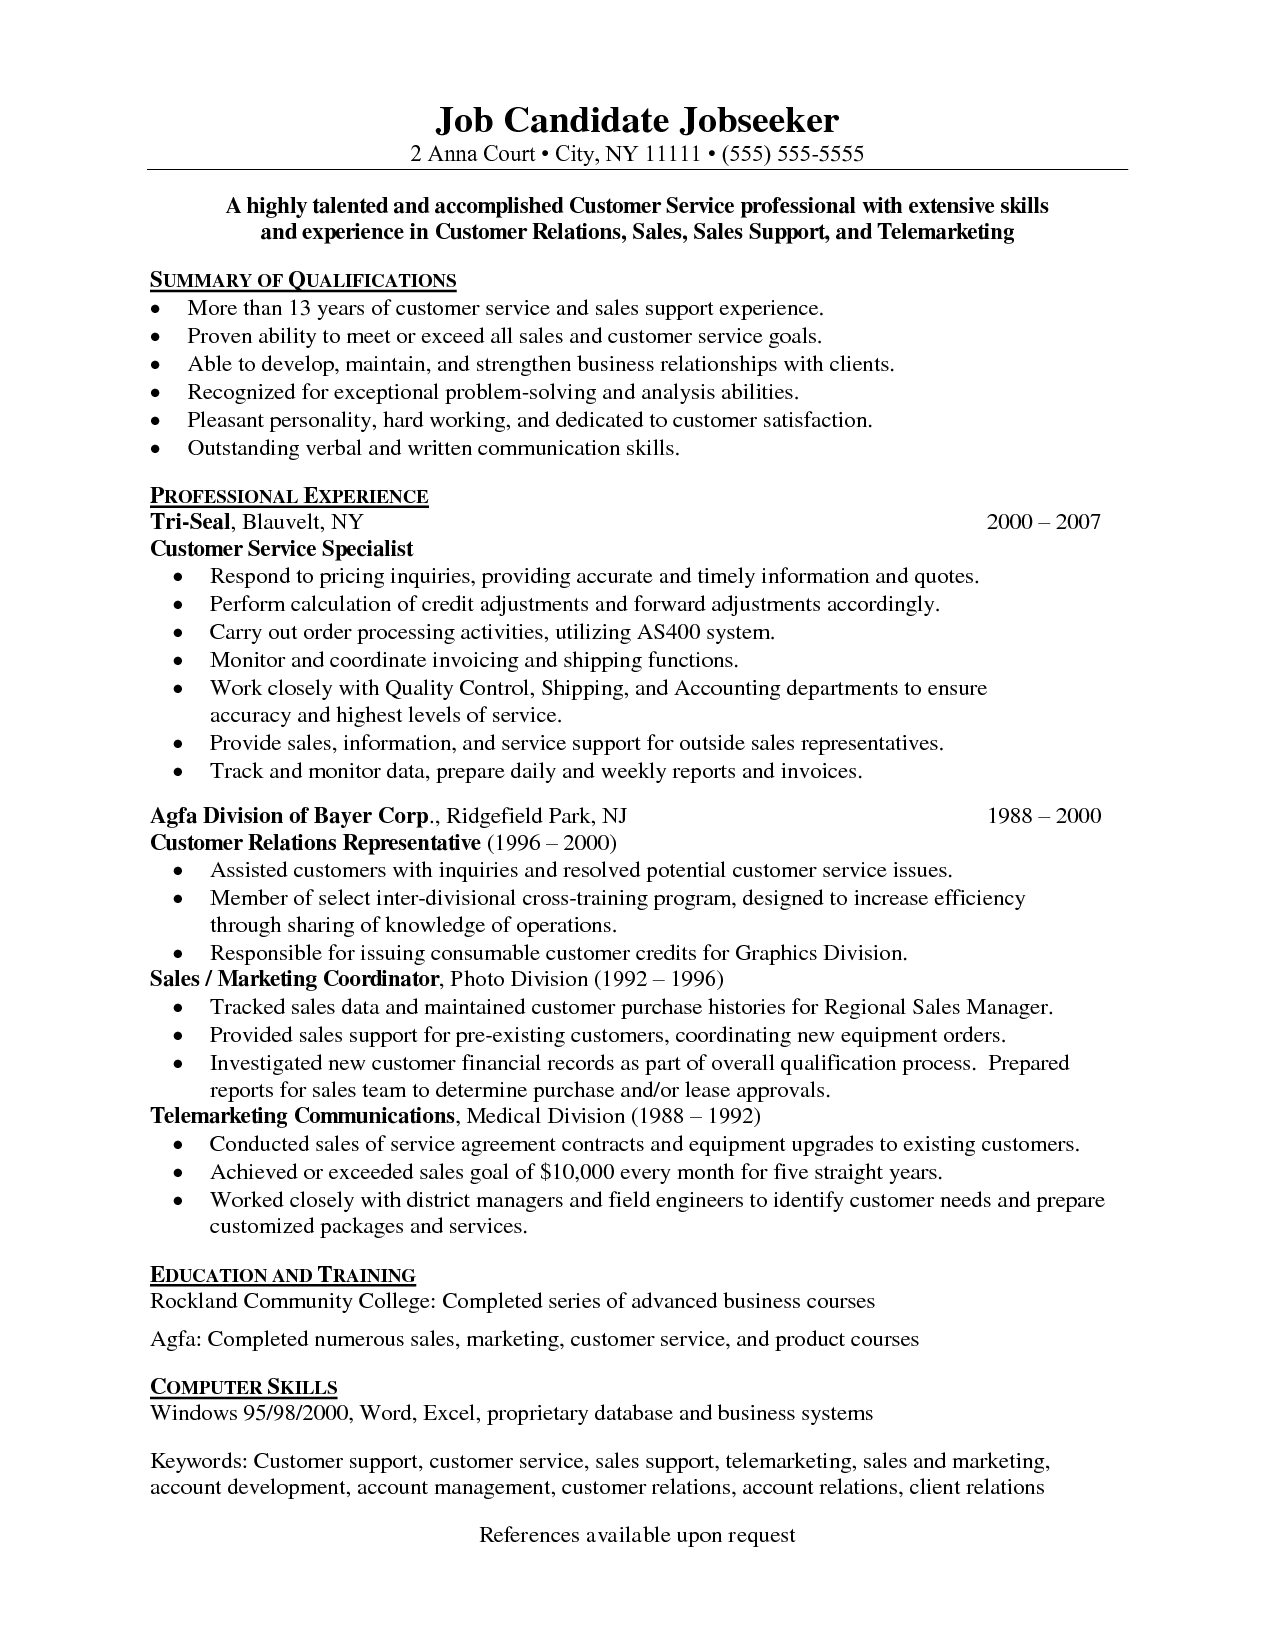 Opposenewapstandardsus  Outstanding Customer Service Resume Format  Roiinvestingcom With Interesting Customer Service Resume Format  With Charming Supply Chain Manager Resume Also How To Design A Resume In Addition How To Make A Cover Page For A Resume And Nurse Assistant Resume As Well As Safety Manager Resume Additionally Waitress Resume Sample From Roiinvestingcom With Opposenewapstandardsus  Interesting Customer Service Resume Format  Roiinvestingcom With Charming Customer Service Resume Format  And Outstanding Supply Chain Manager Resume Also How To Design A Resume In Addition How To Make A Cover Page For A Resume From Roiinvestingcom